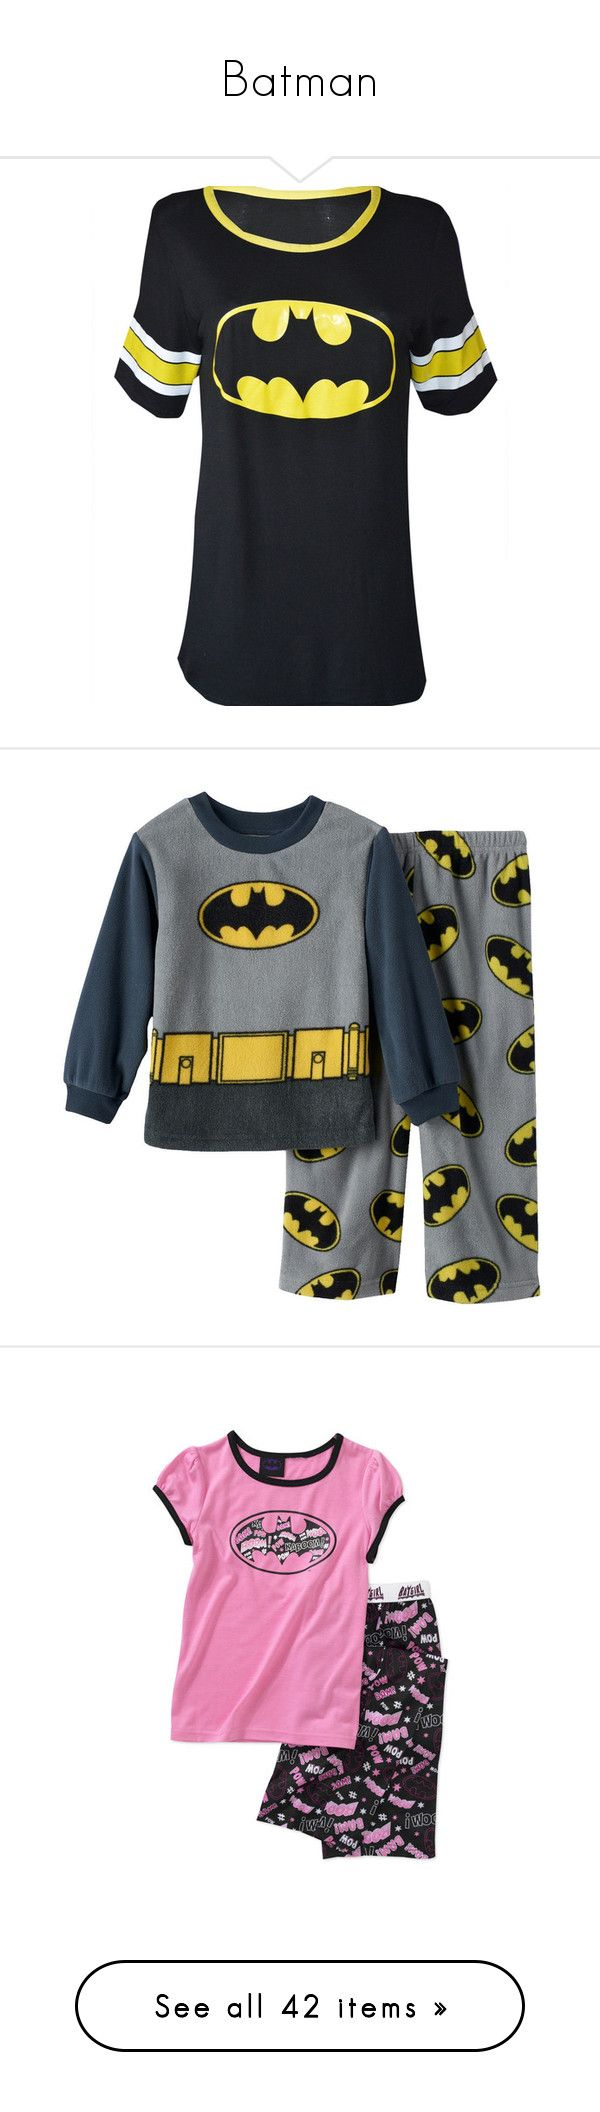 """""""Batman"""" by wonderland-junkie ❤ liked on Polyvore featuring tops, t-shirts, shirts, batman, oversized shirts, over sized t shirt, superman t shirt, oversized t shirt, tee-shirt and baby girl"""